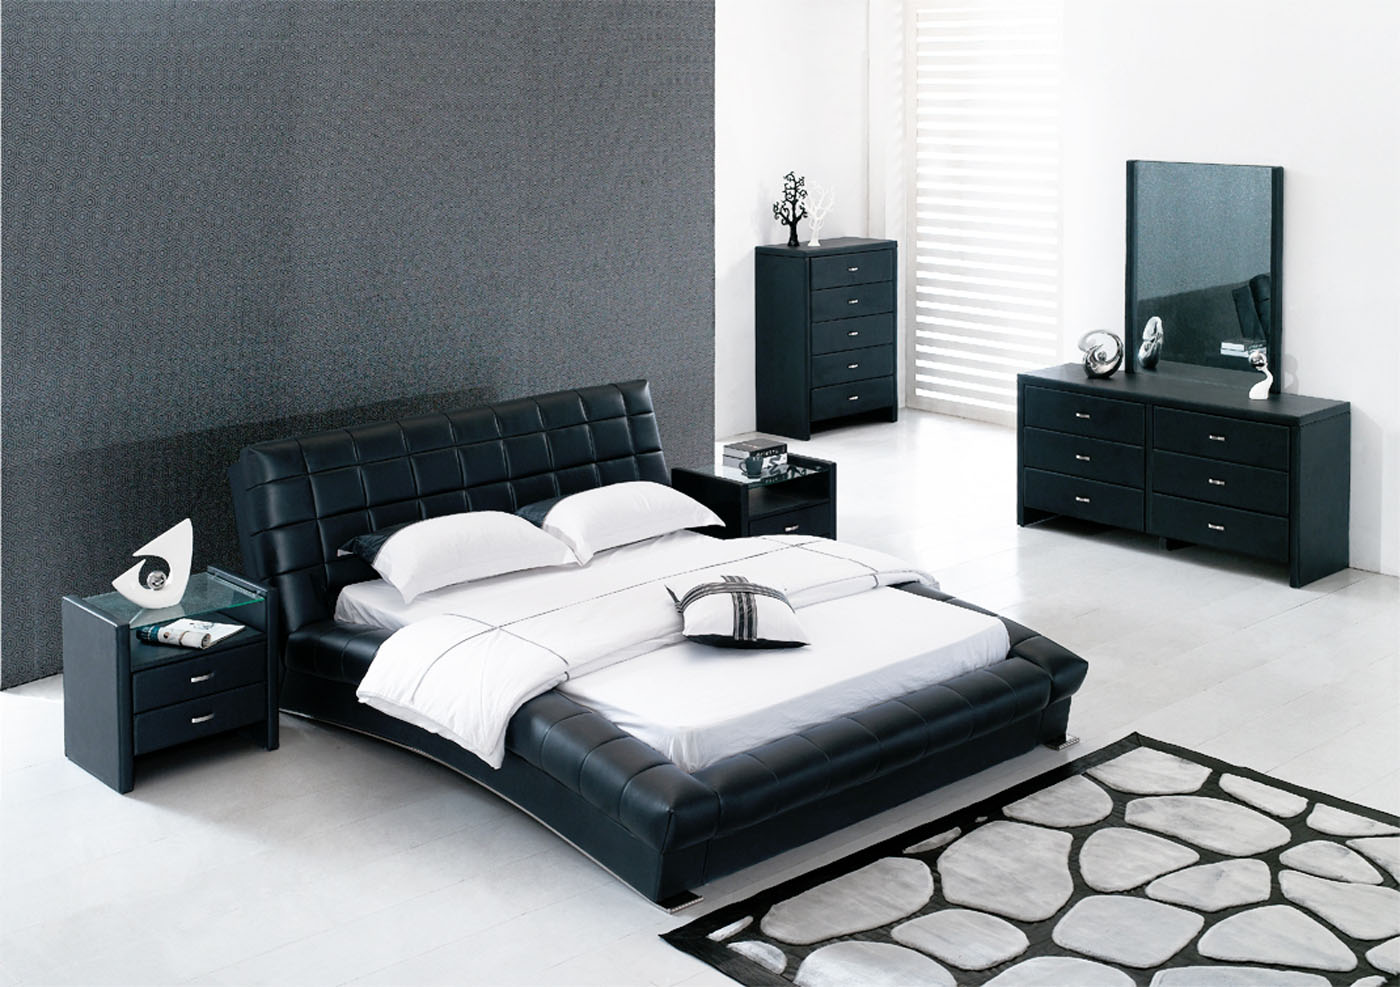 Modern Black And White Bed Room Ideas Large